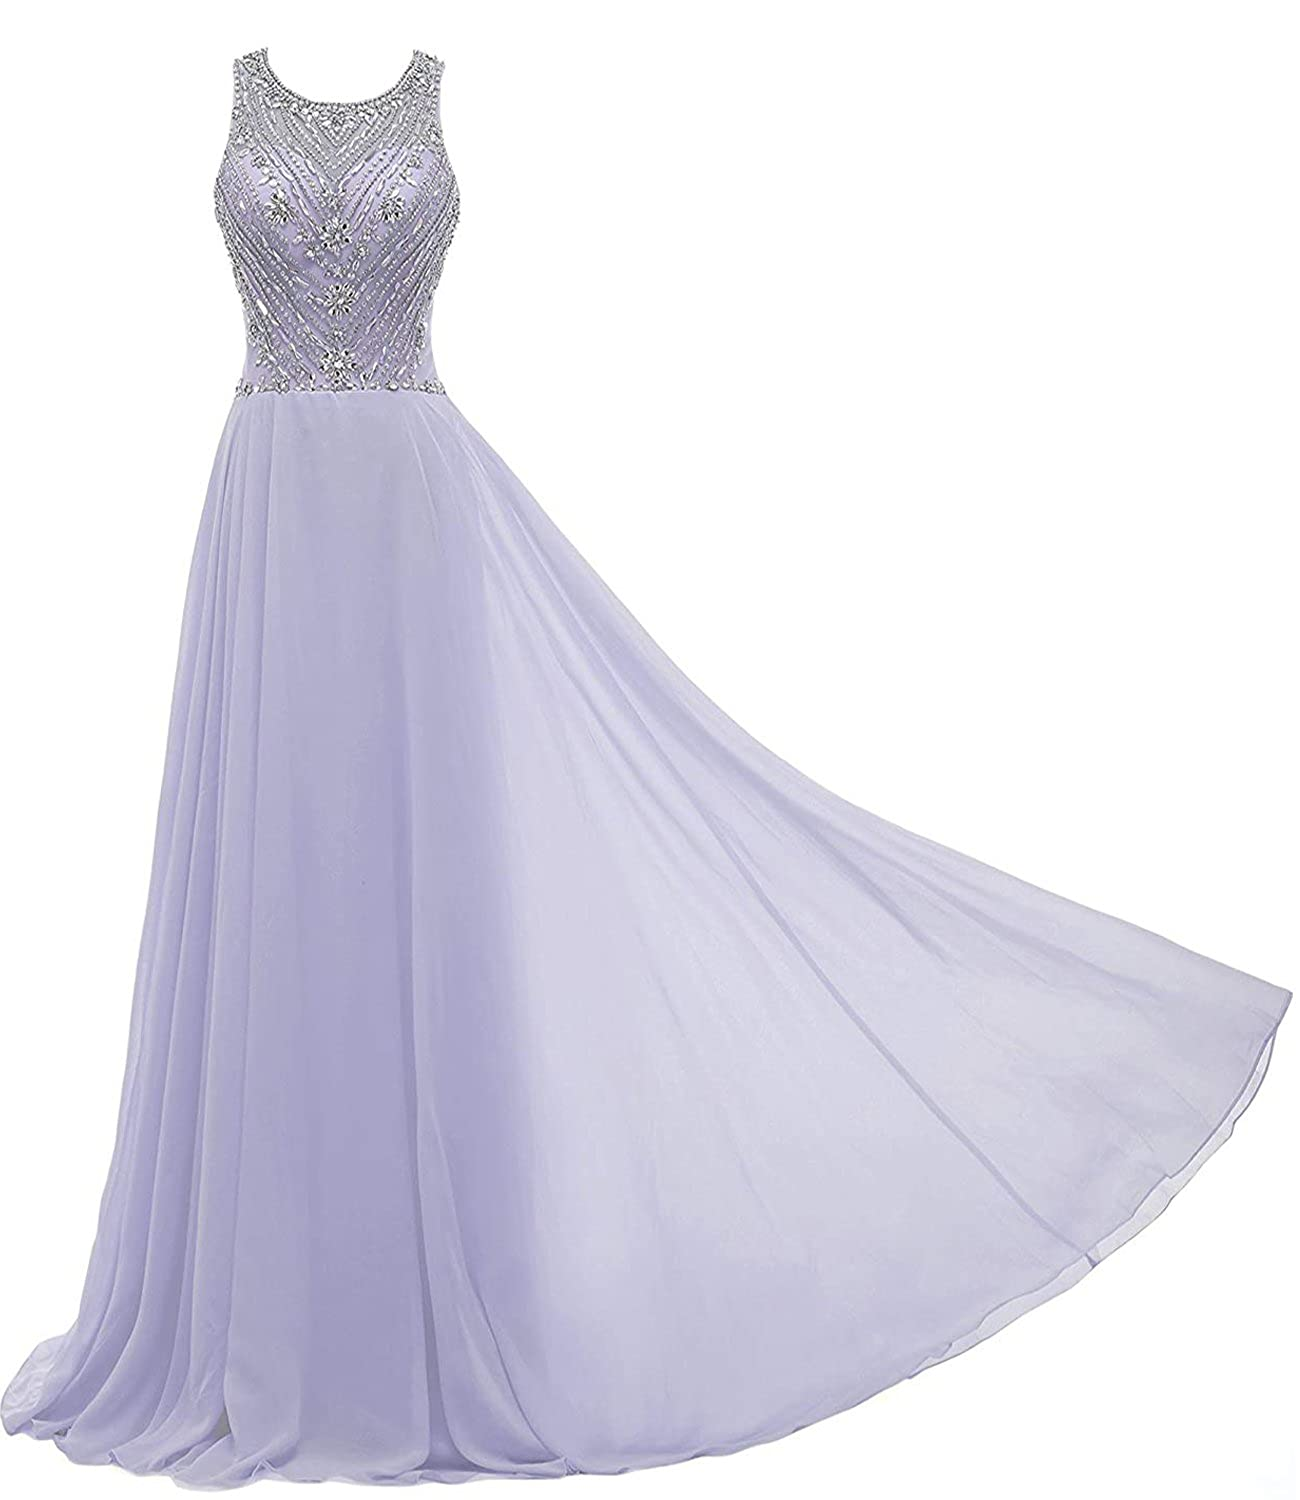 d894780d324 Solovedress Women s Cap Sleeves Chiffon Beaded Long Prom Dress Evening Gown  Bridesmaid  Amazon.co.uk  Clothing